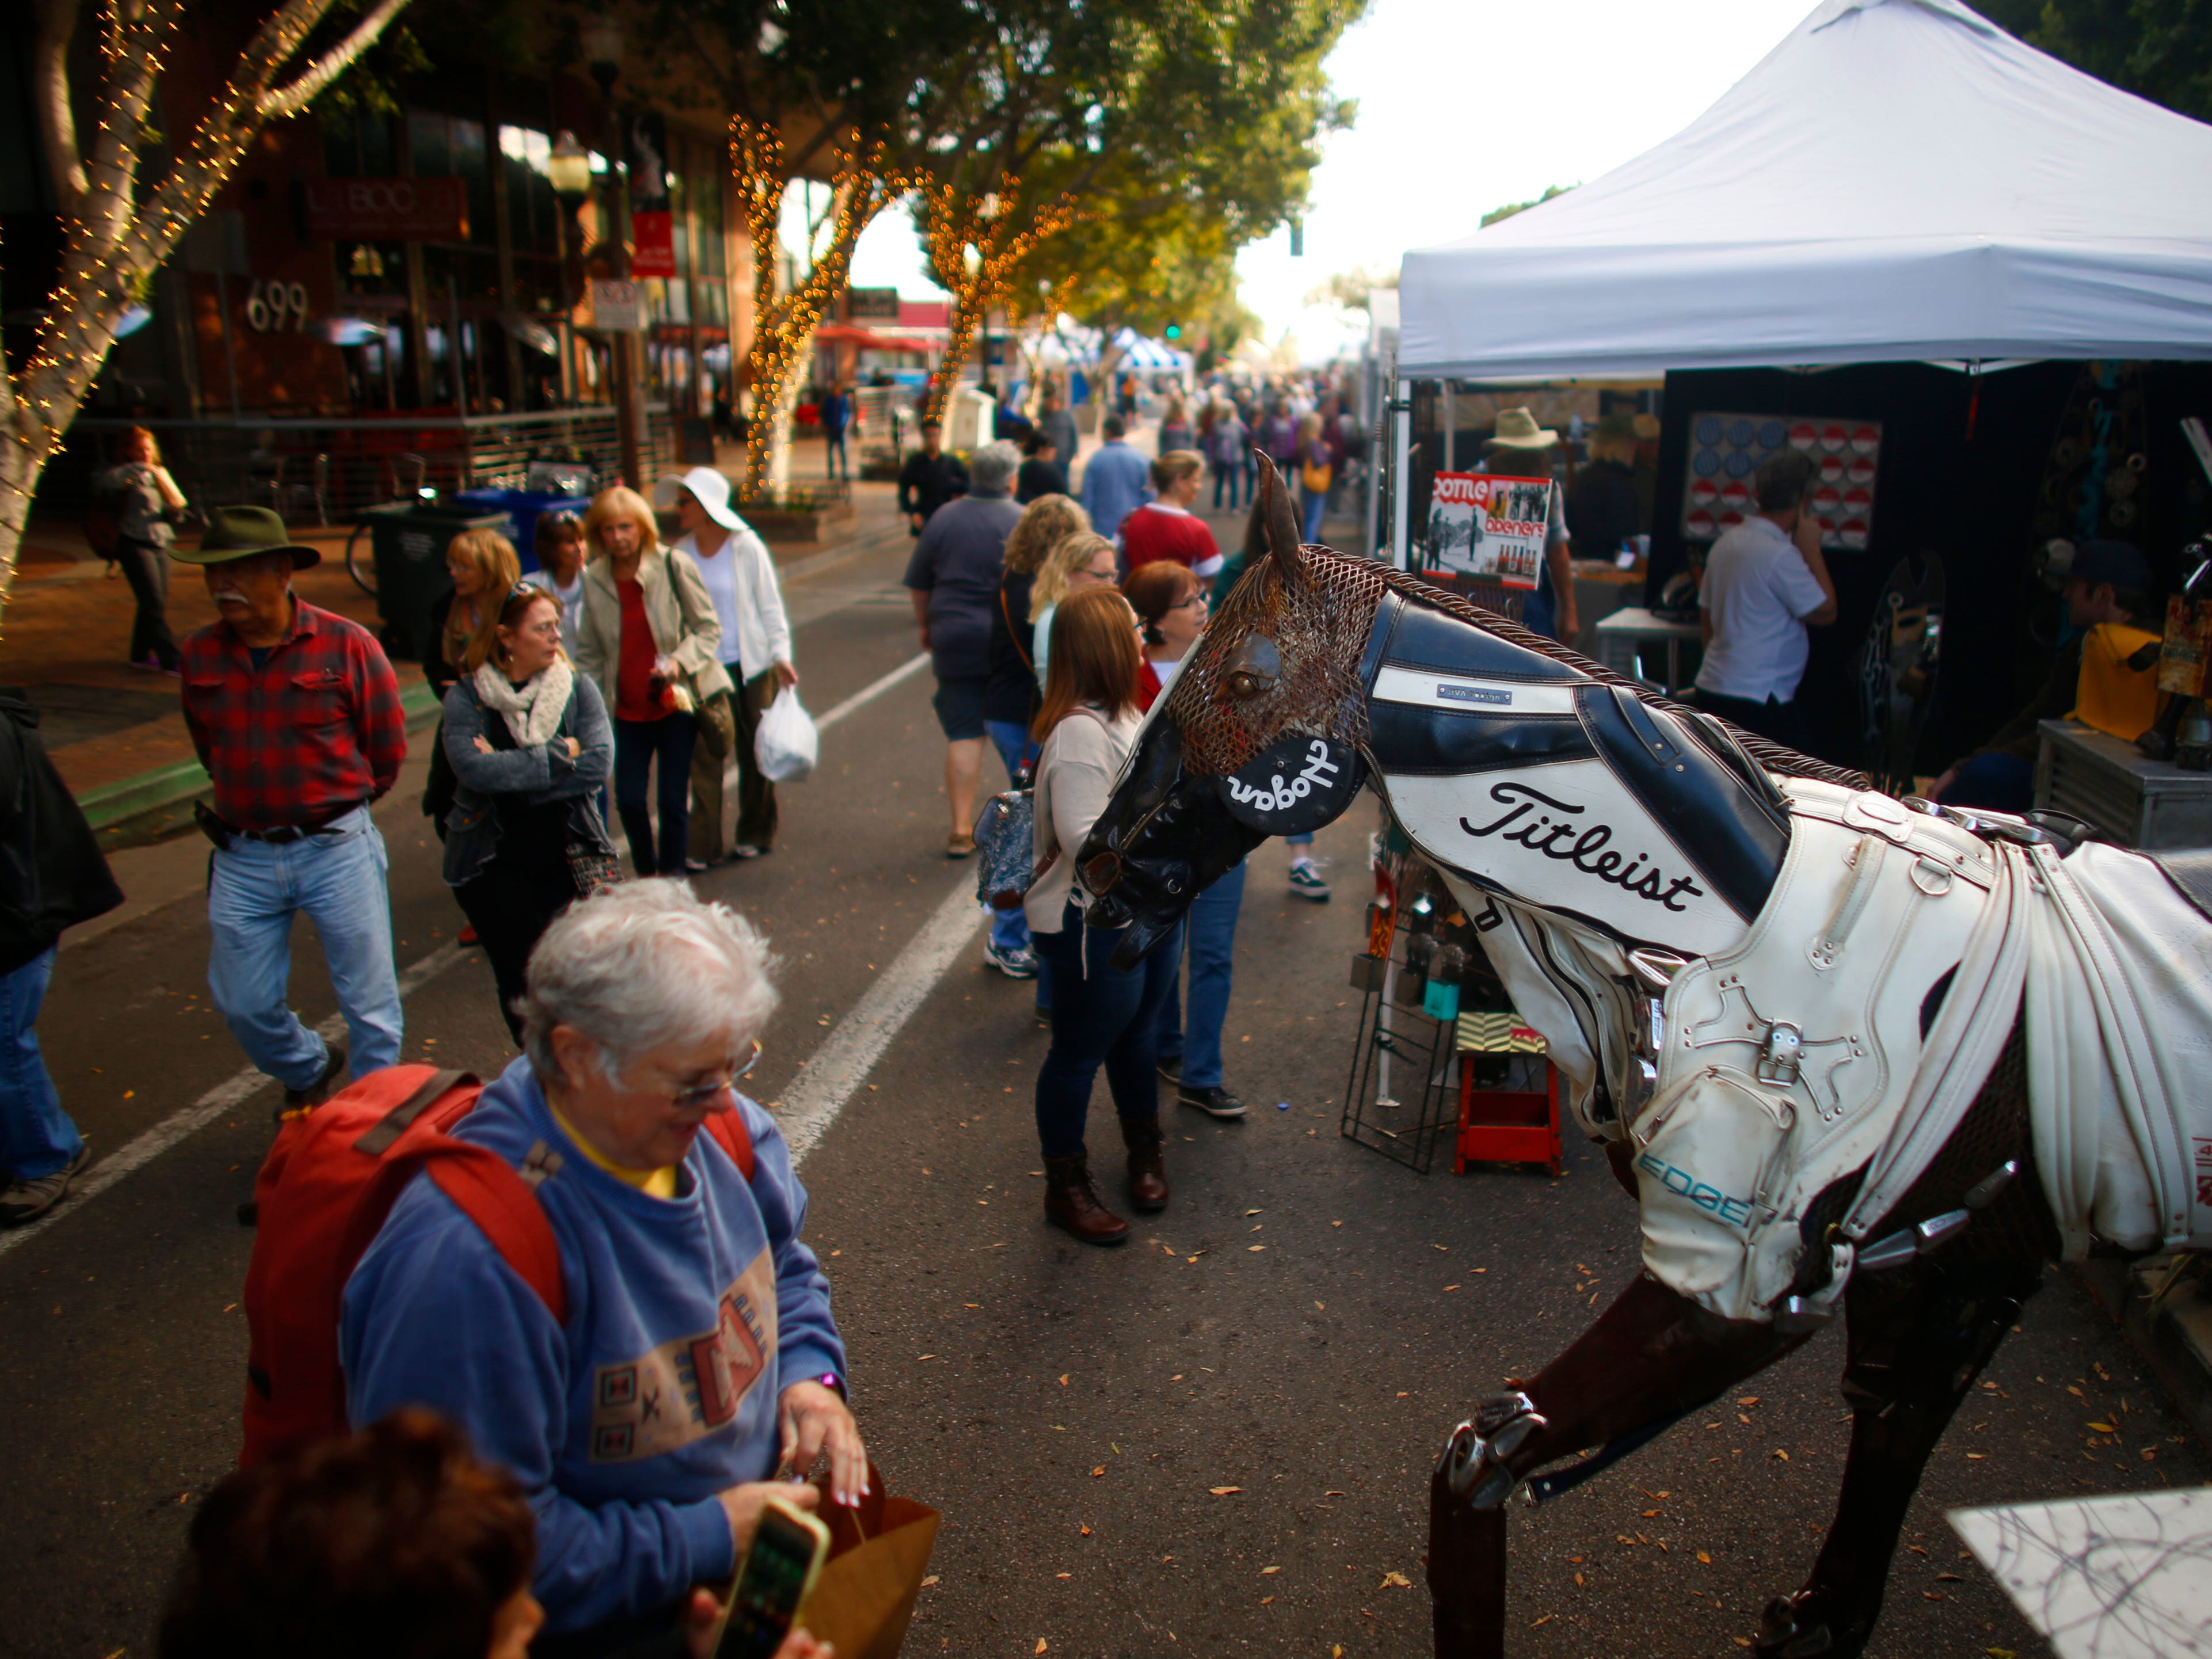 People make their way around the local artists and their shops at the Tempe Festival of the Arts on Mill Avenue on Friday, November 30, 2018.